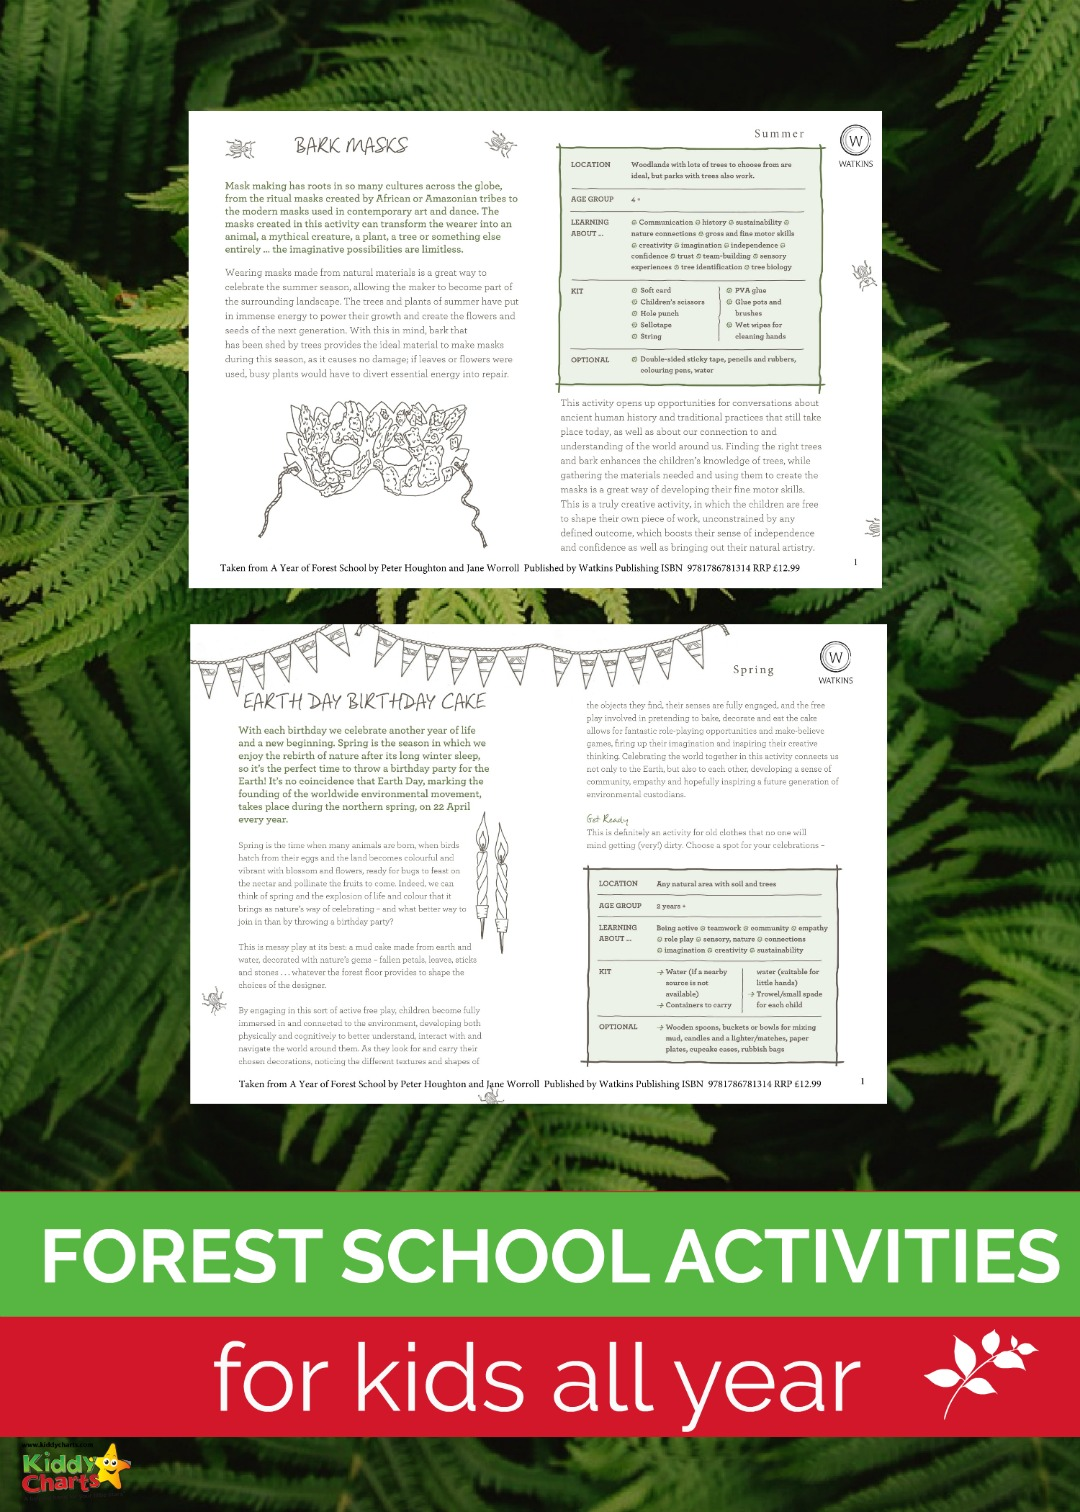 Seasonal forest school activities for you and the kids; so you don't have to have the sun shining to have fun in the forest! #kids #activities #nature #outdoors